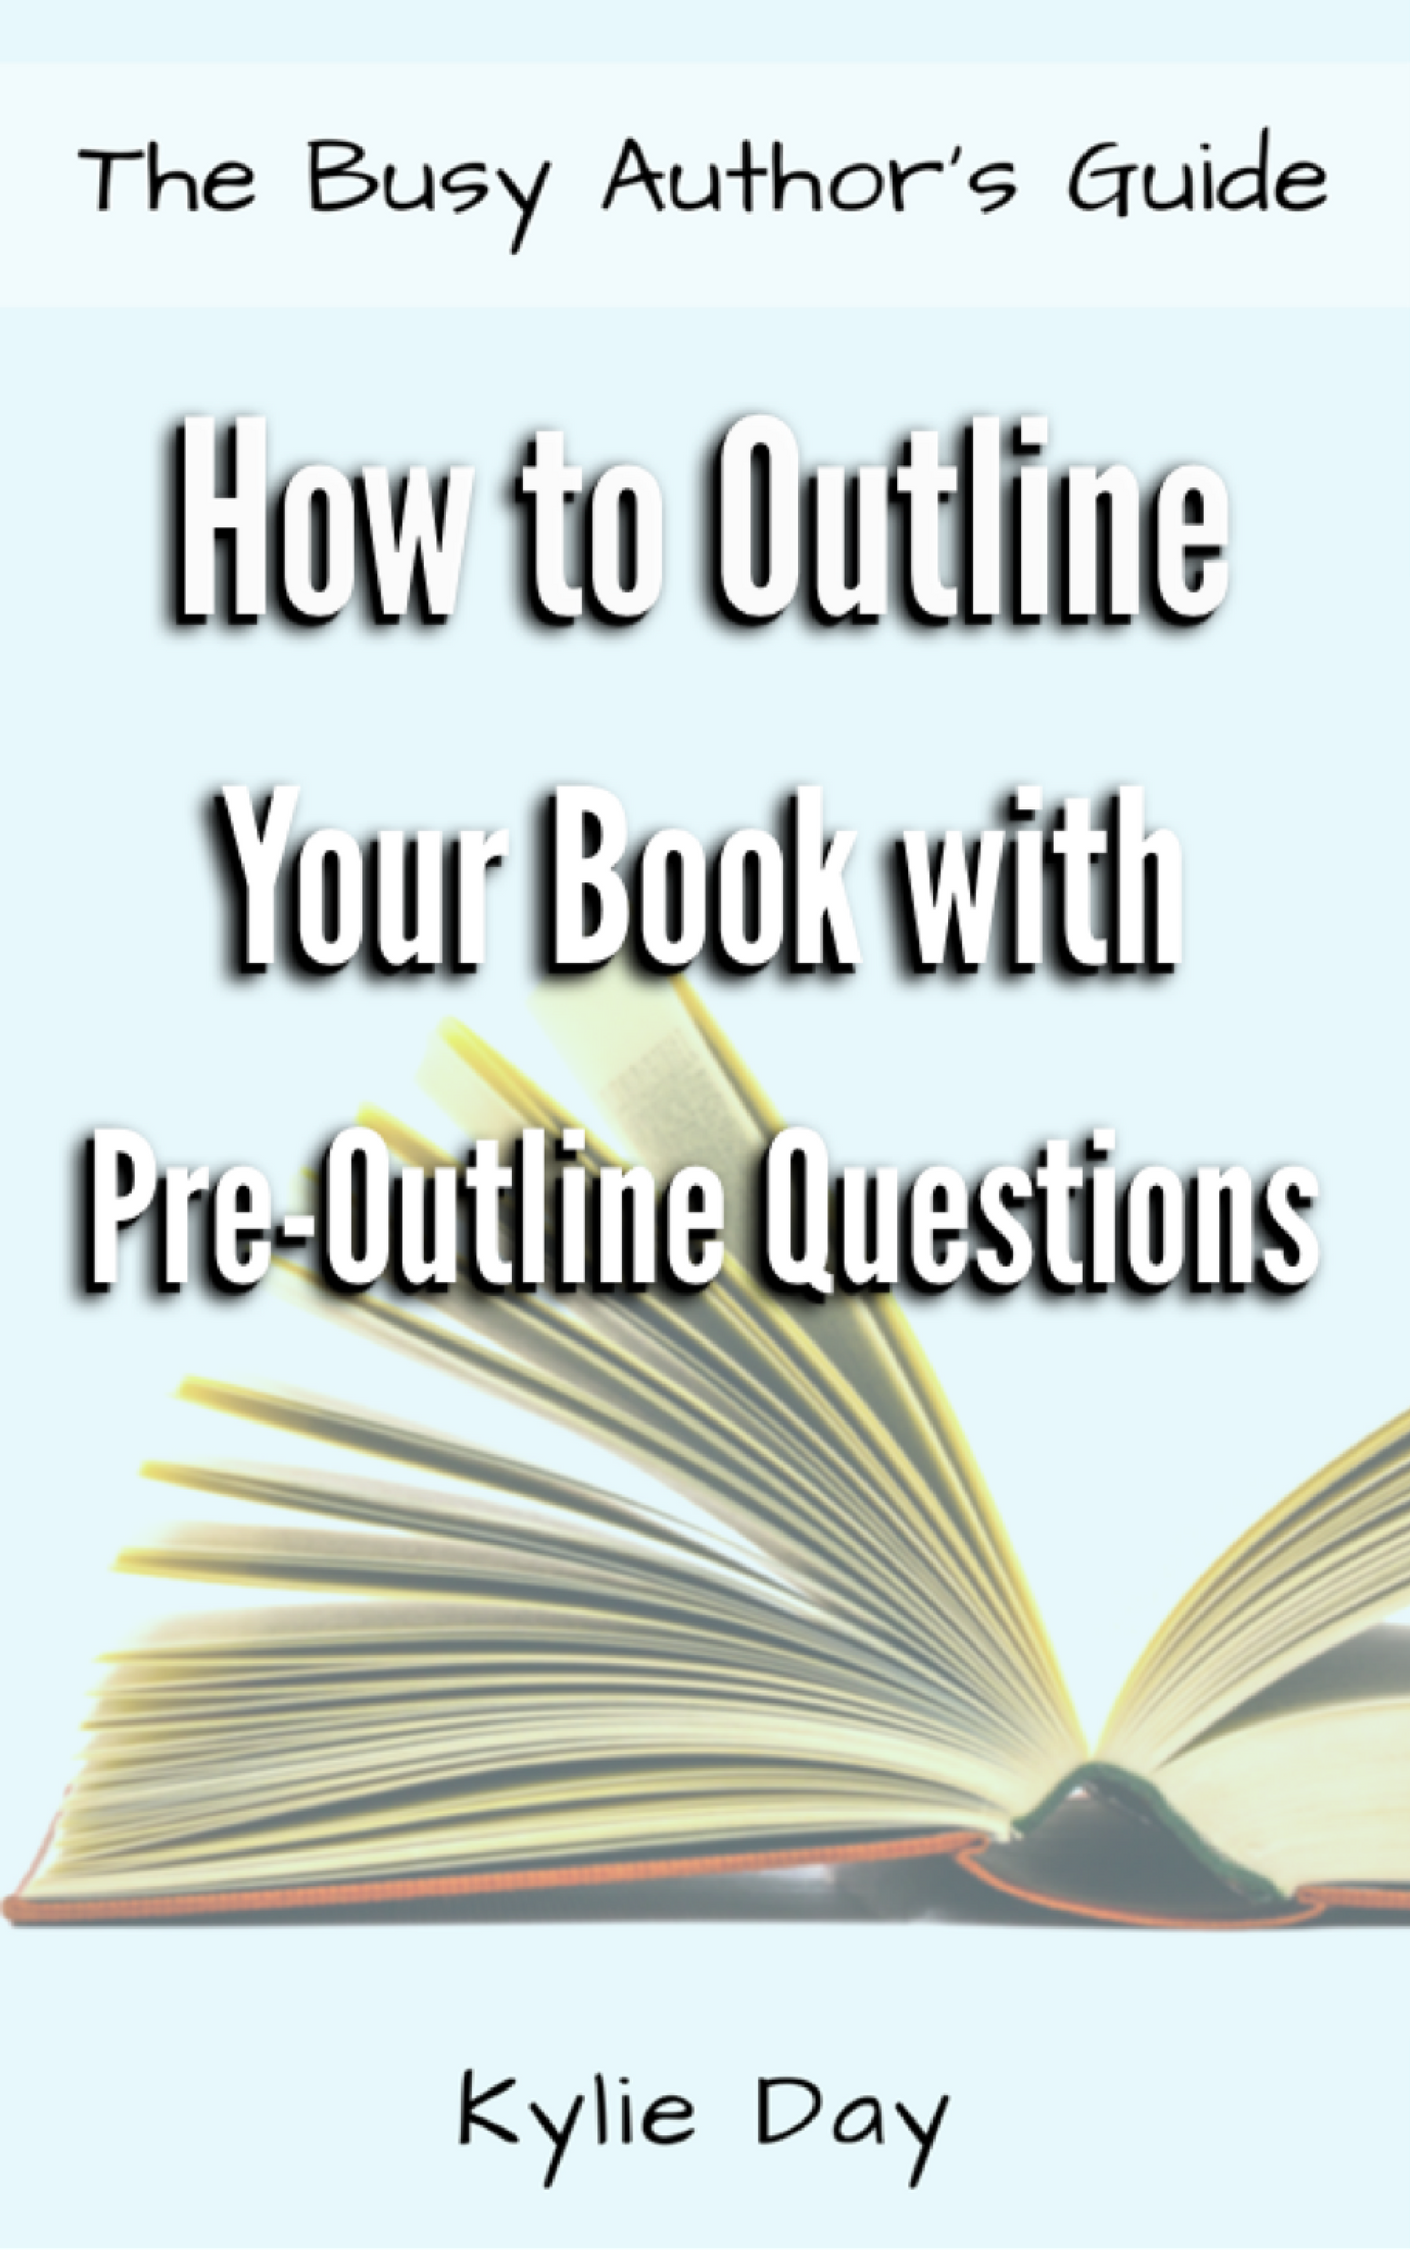 The Busy Author's Guide 1.png